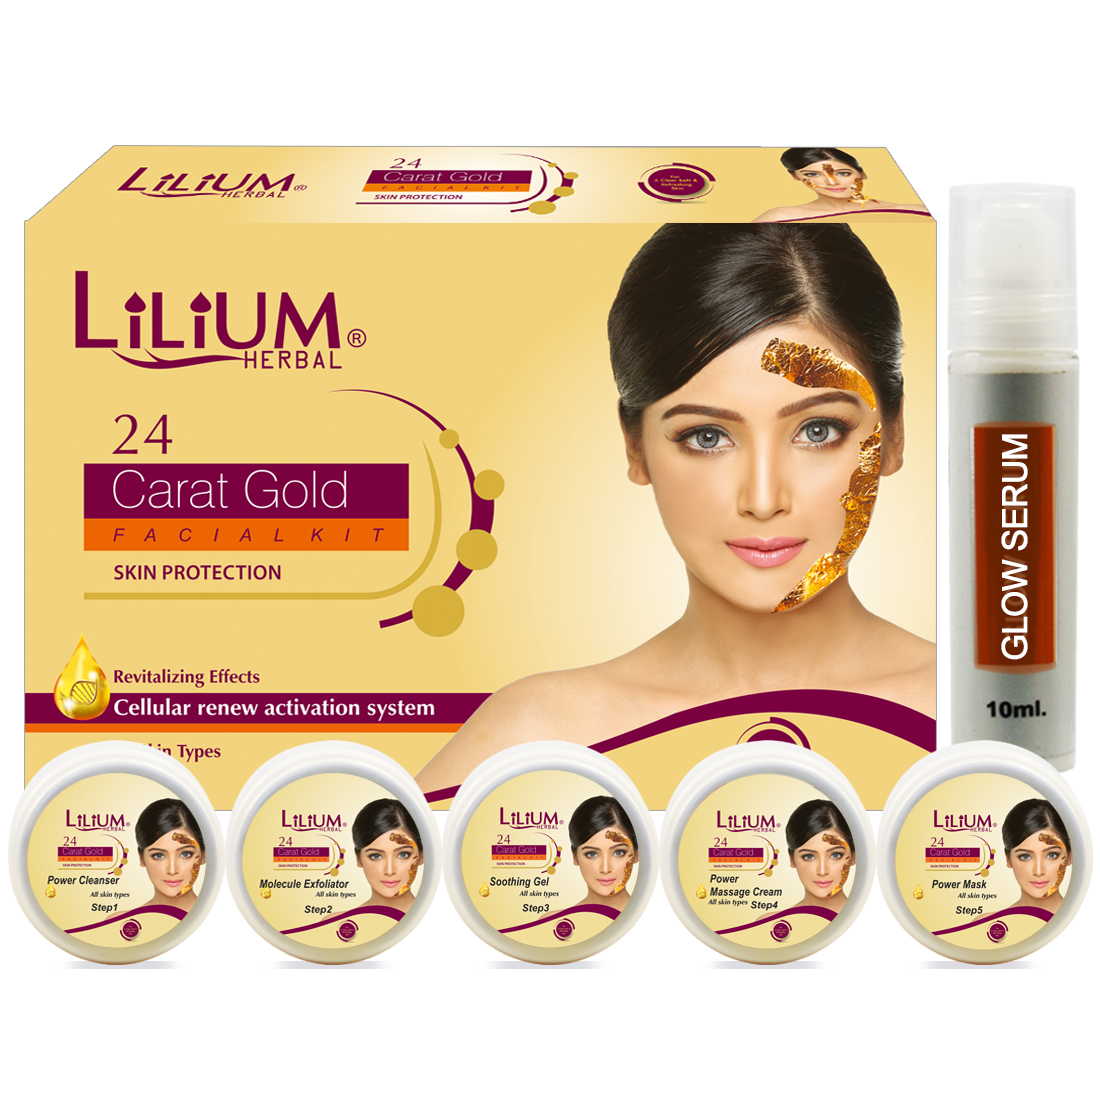 Lilium 24Carat Gold Facial Kit220gm With 5in1 Face Massager & Skin Whitening Cream Pack of 3